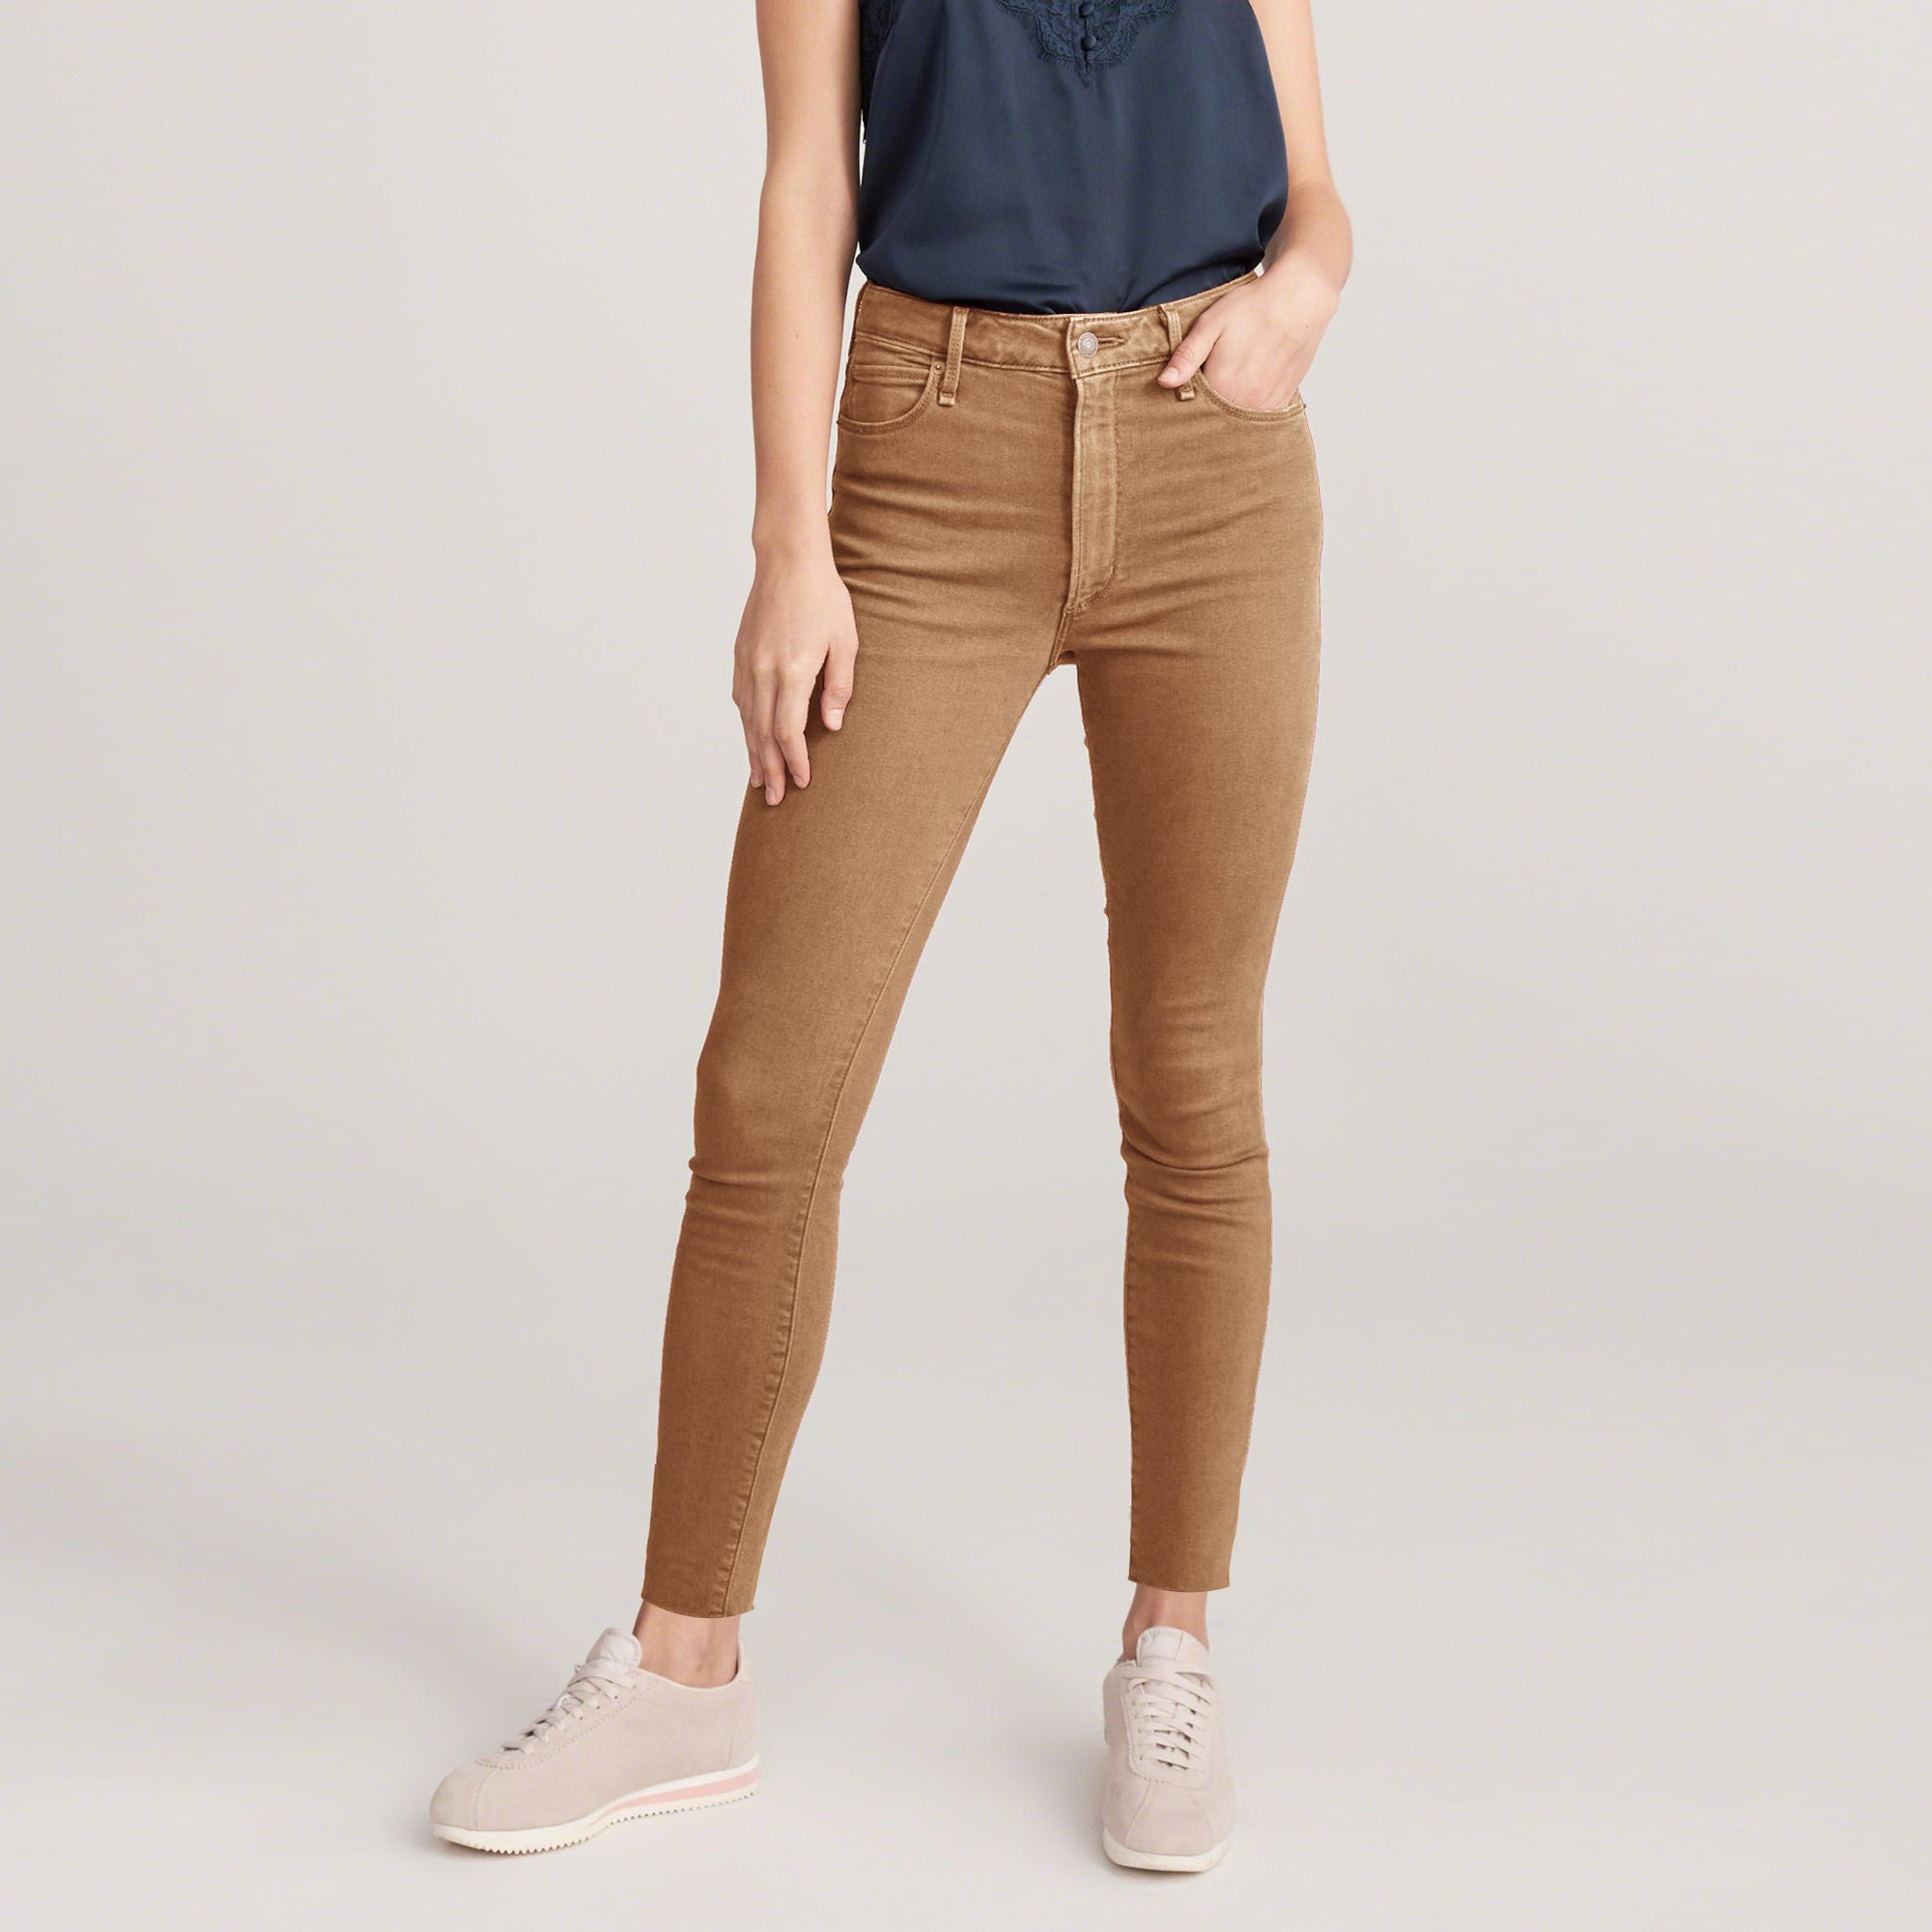 Old Navy Stylish Slim Fit Denim For Ladies-Brown-NA8781